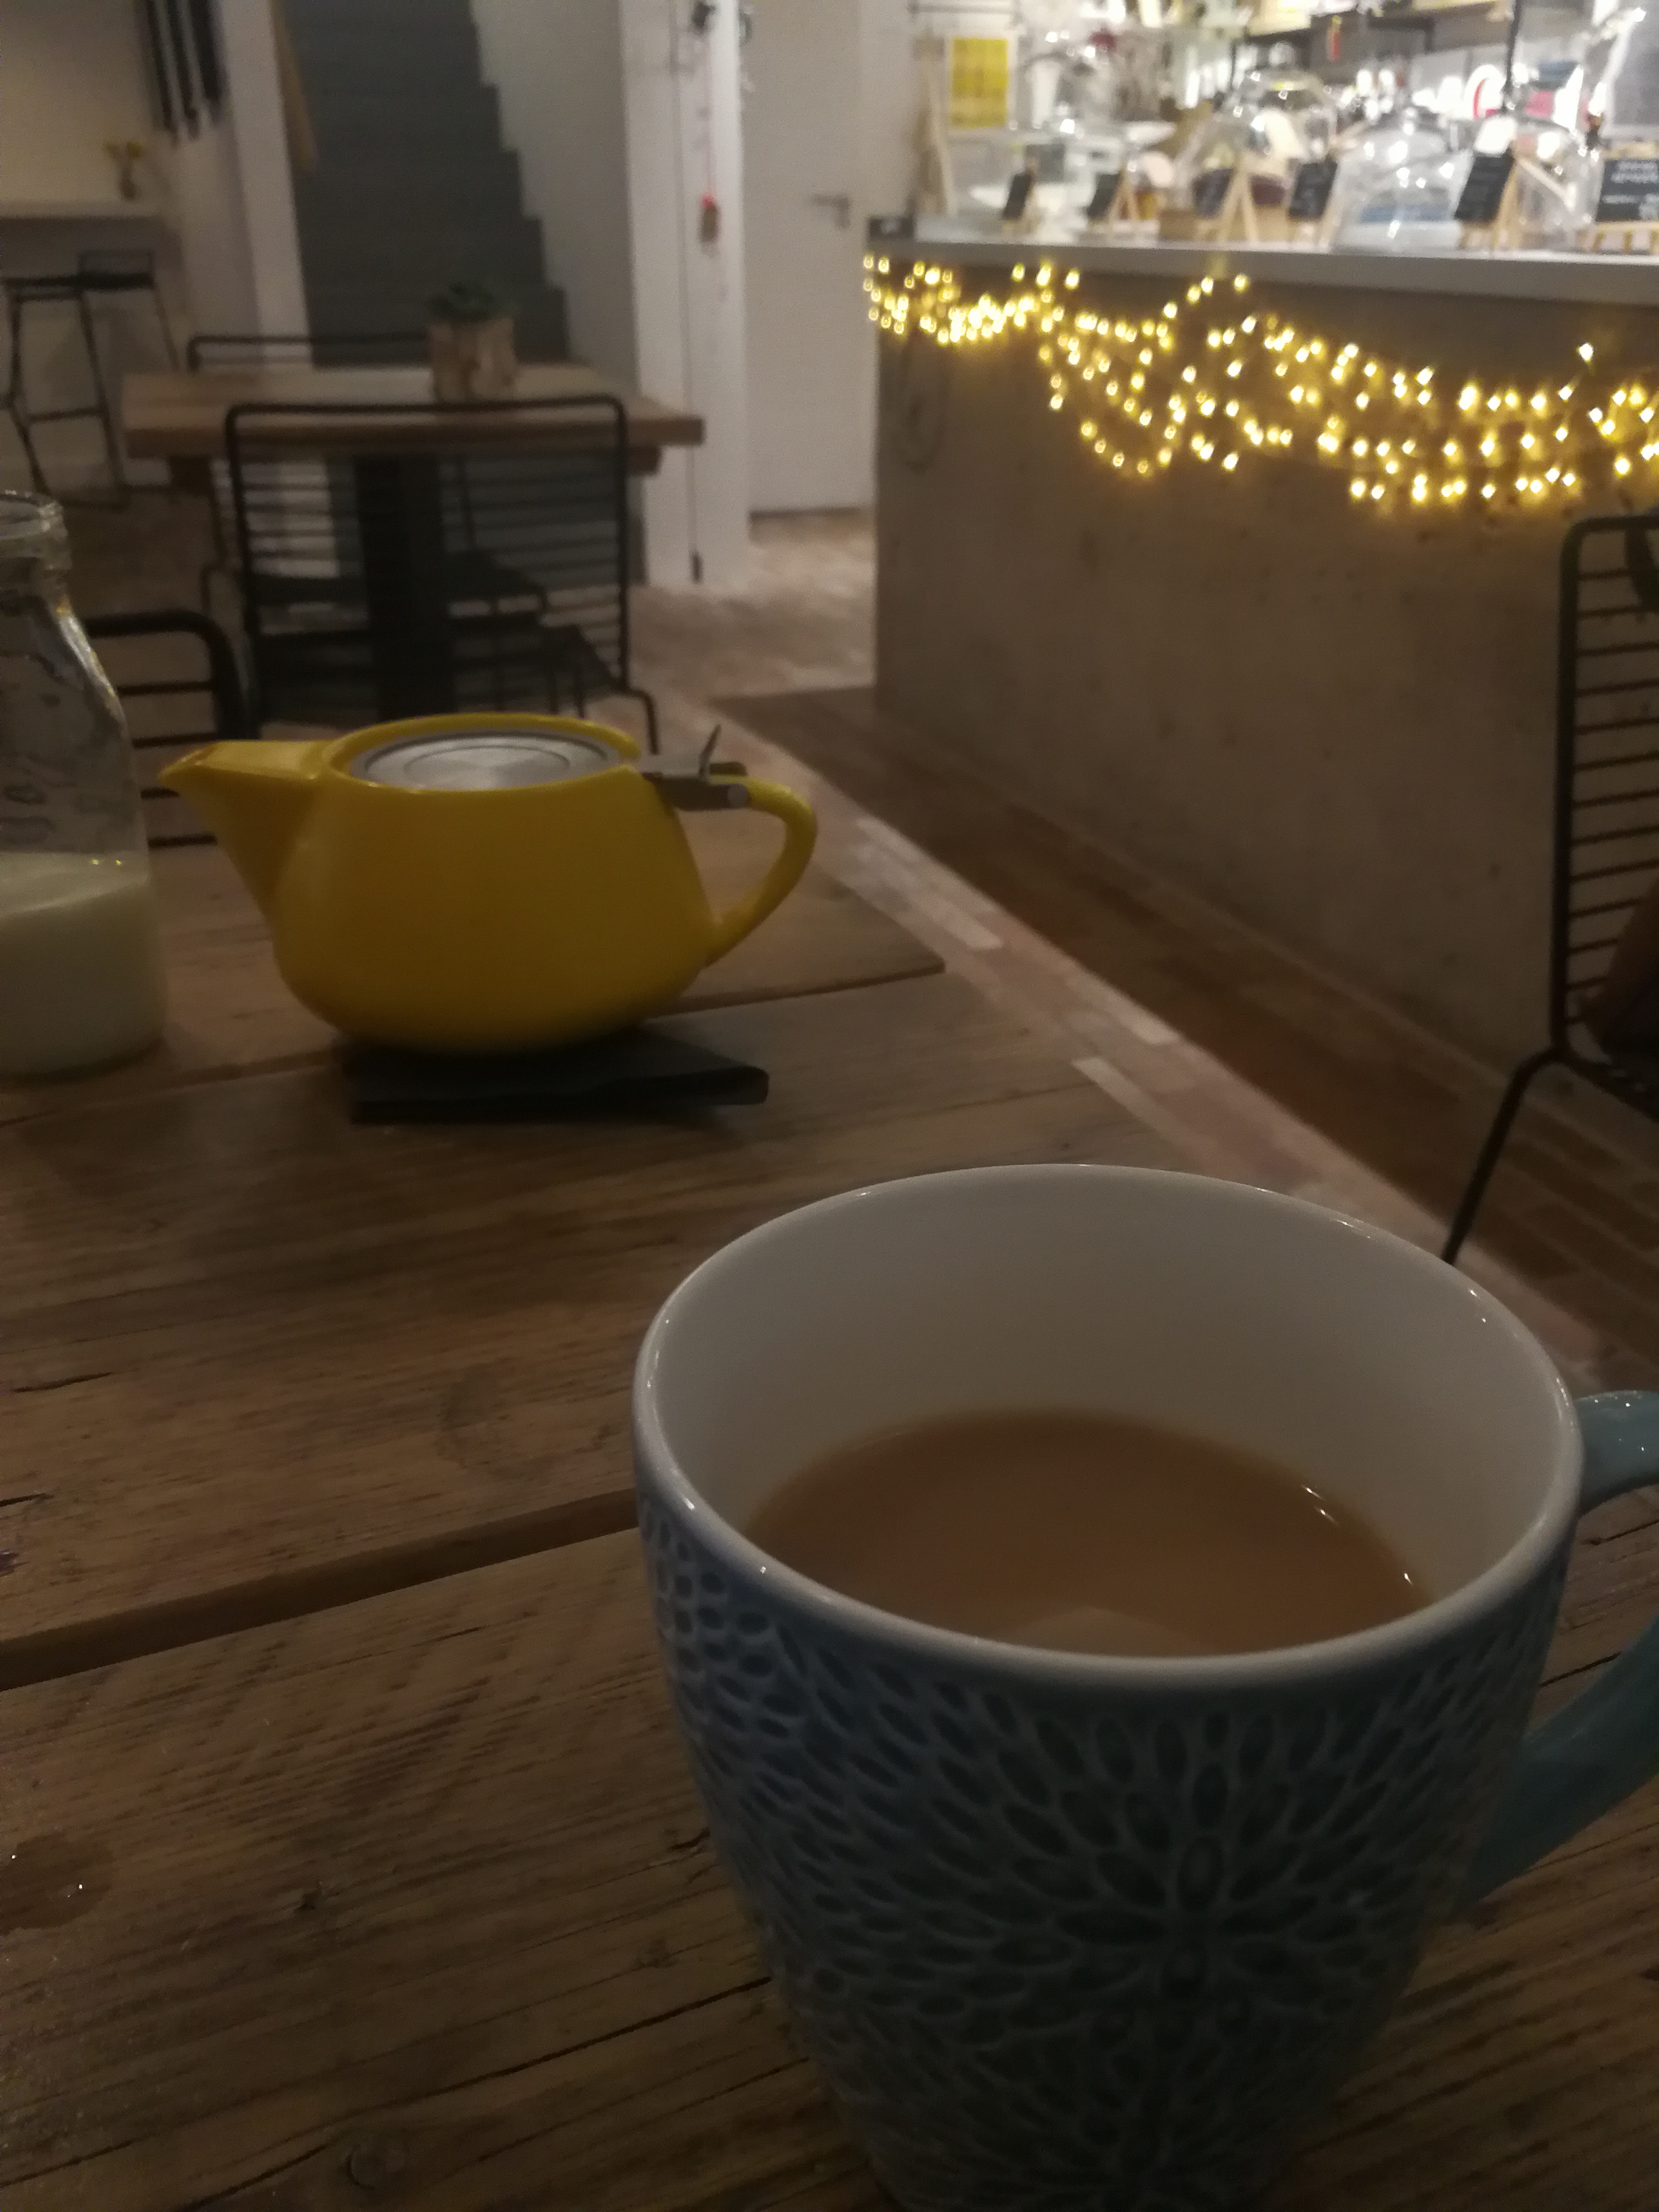 A photo of a cup of tea on a table in GK Gallery, one of our BOOBS approved venues offering discount in the BOOBS member scheme.